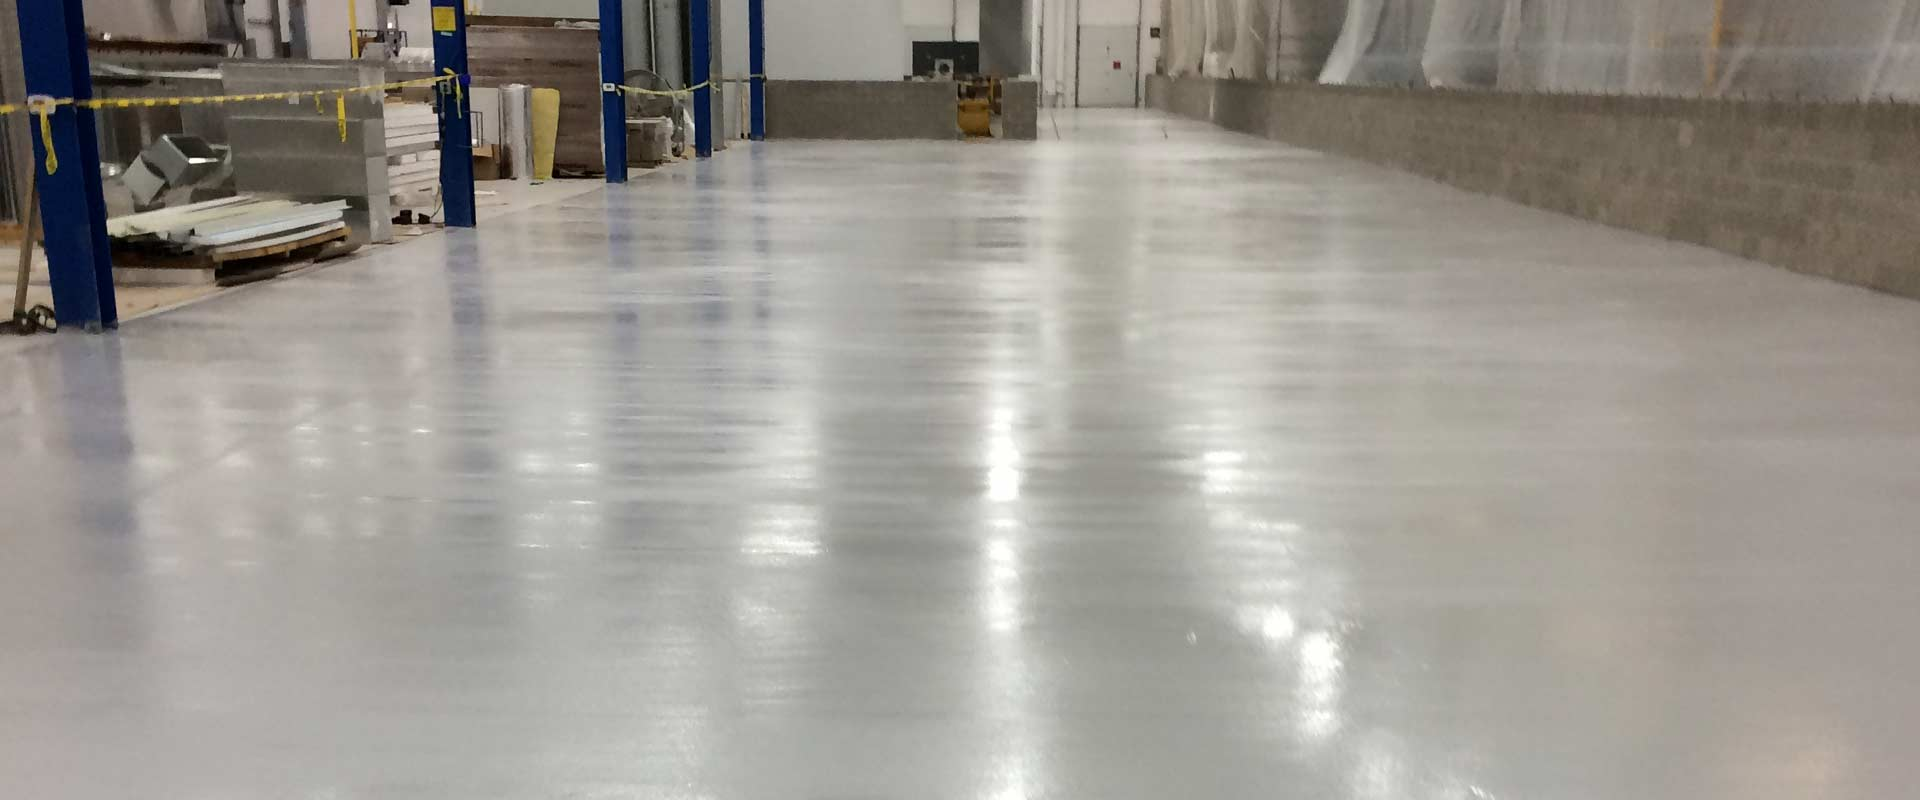 Food & Beverage Processing Flooring